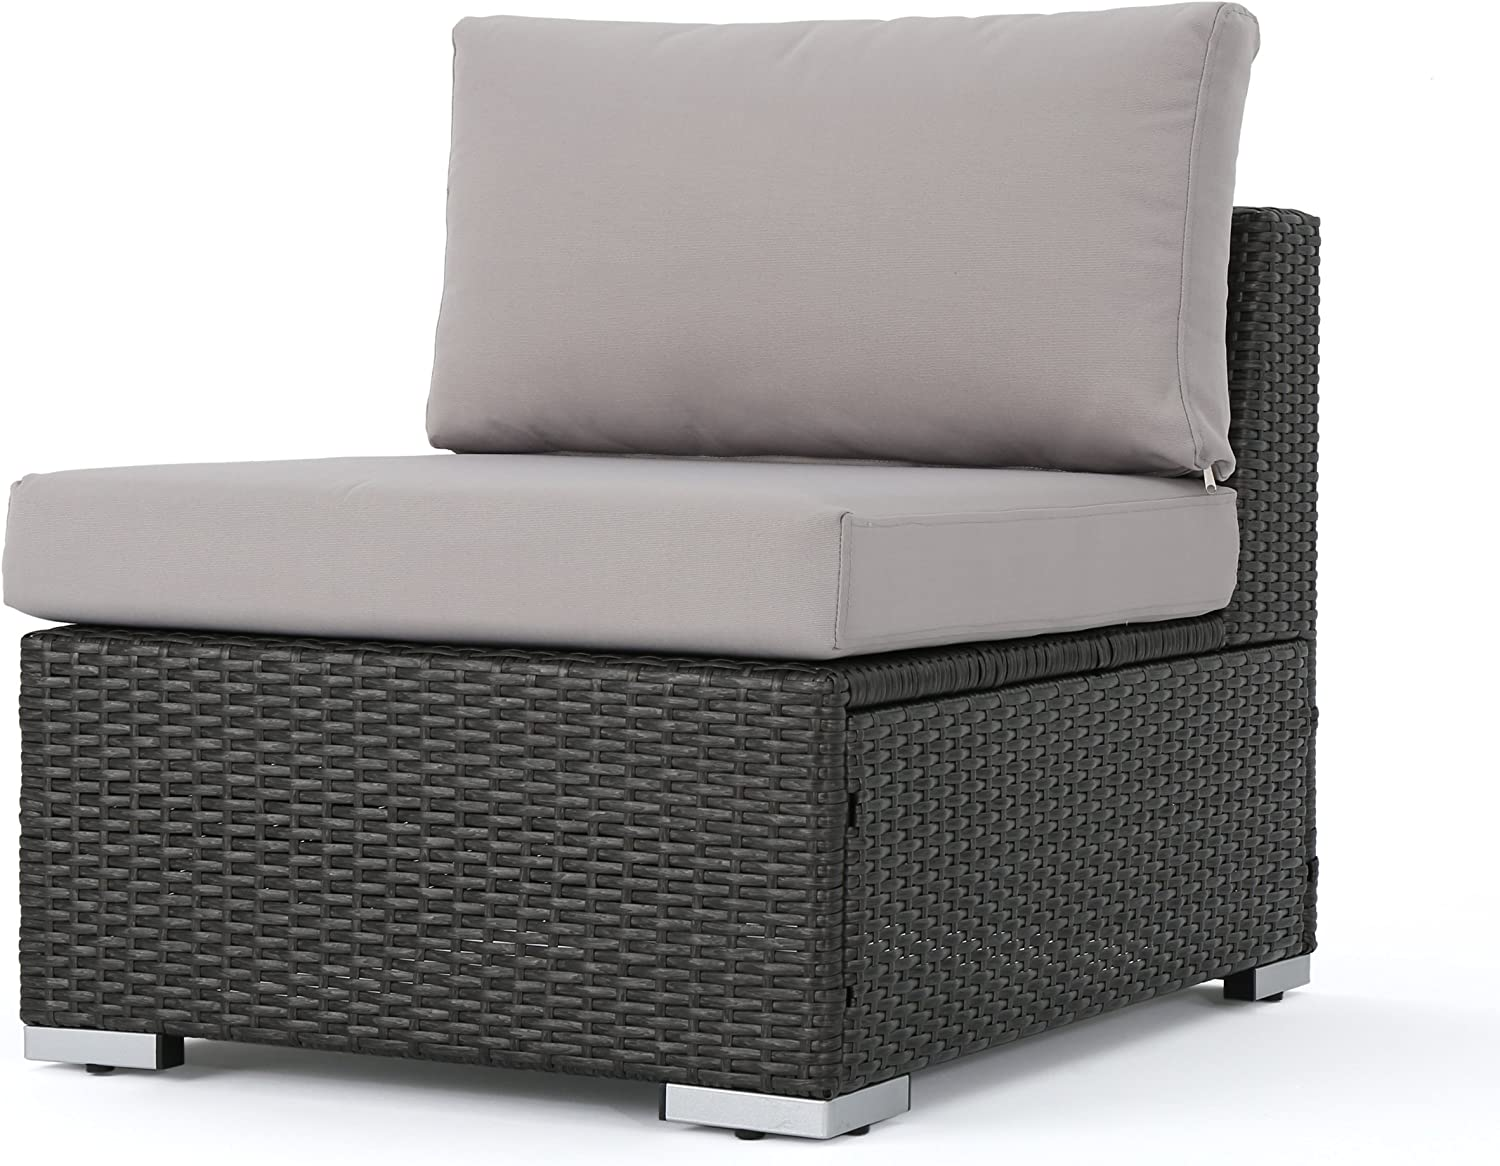 Christopher Knight Home Santa Rosa Outdoor Wicker Armless Sectional Sofa Seat with Aluminum Frame and Water Resistant Cushions, Grey / Silver